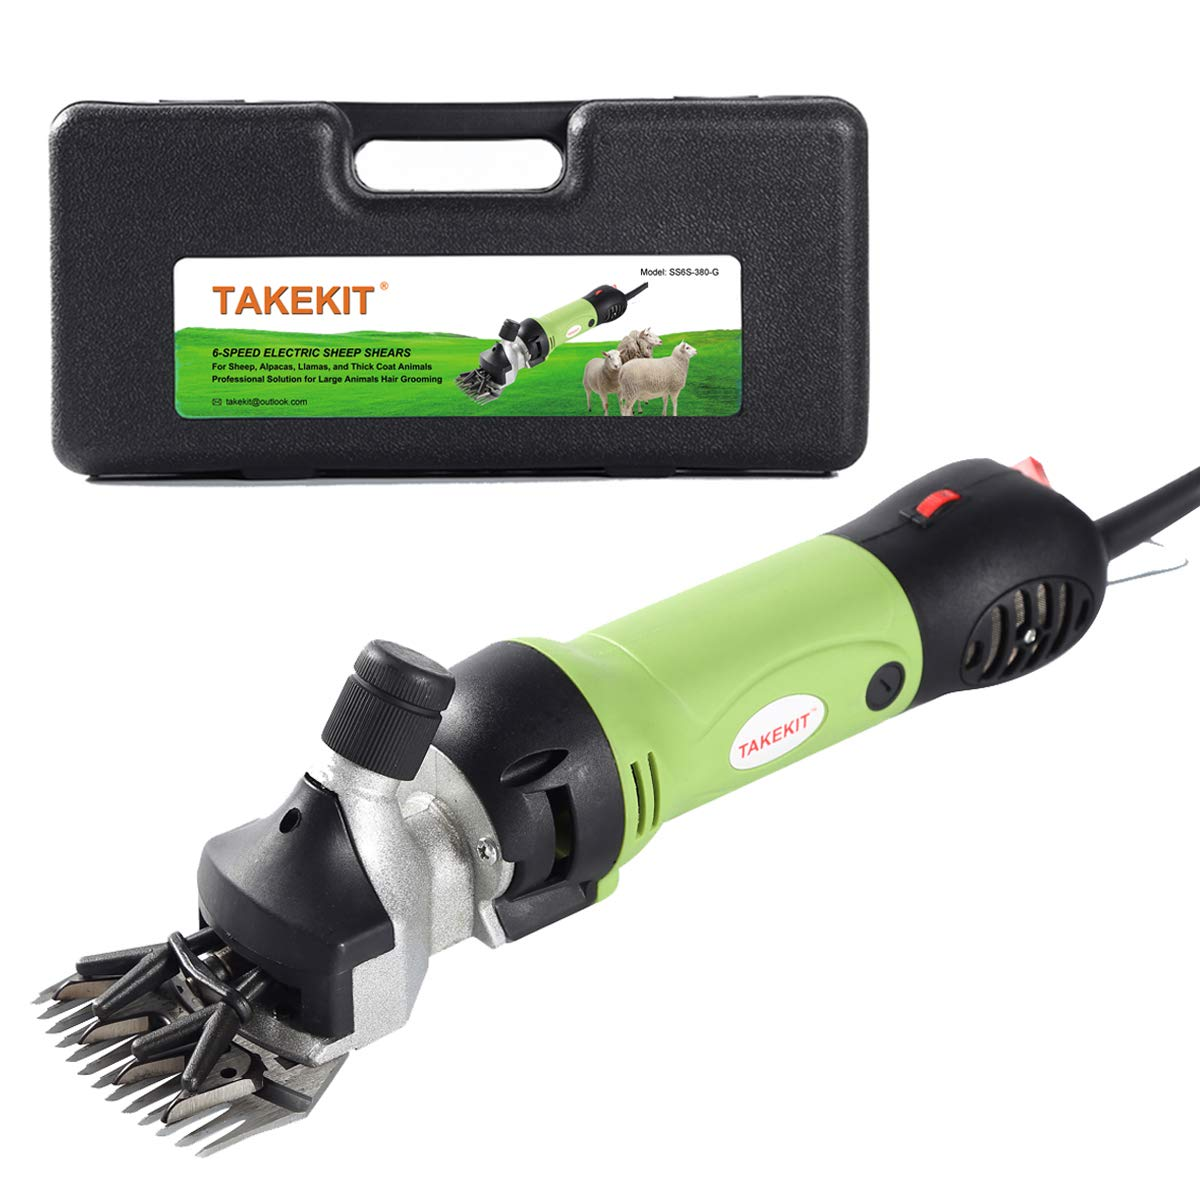 TAKEKIT Sheep Shears Professional Electric Animal Grooming Clippers for Sheep Alpacas Llamas and Large Thick Coat Animals, 6 Speeds Heavy Duty Farm Livestock Haircut Trimmer, 380W by TAKEKIT